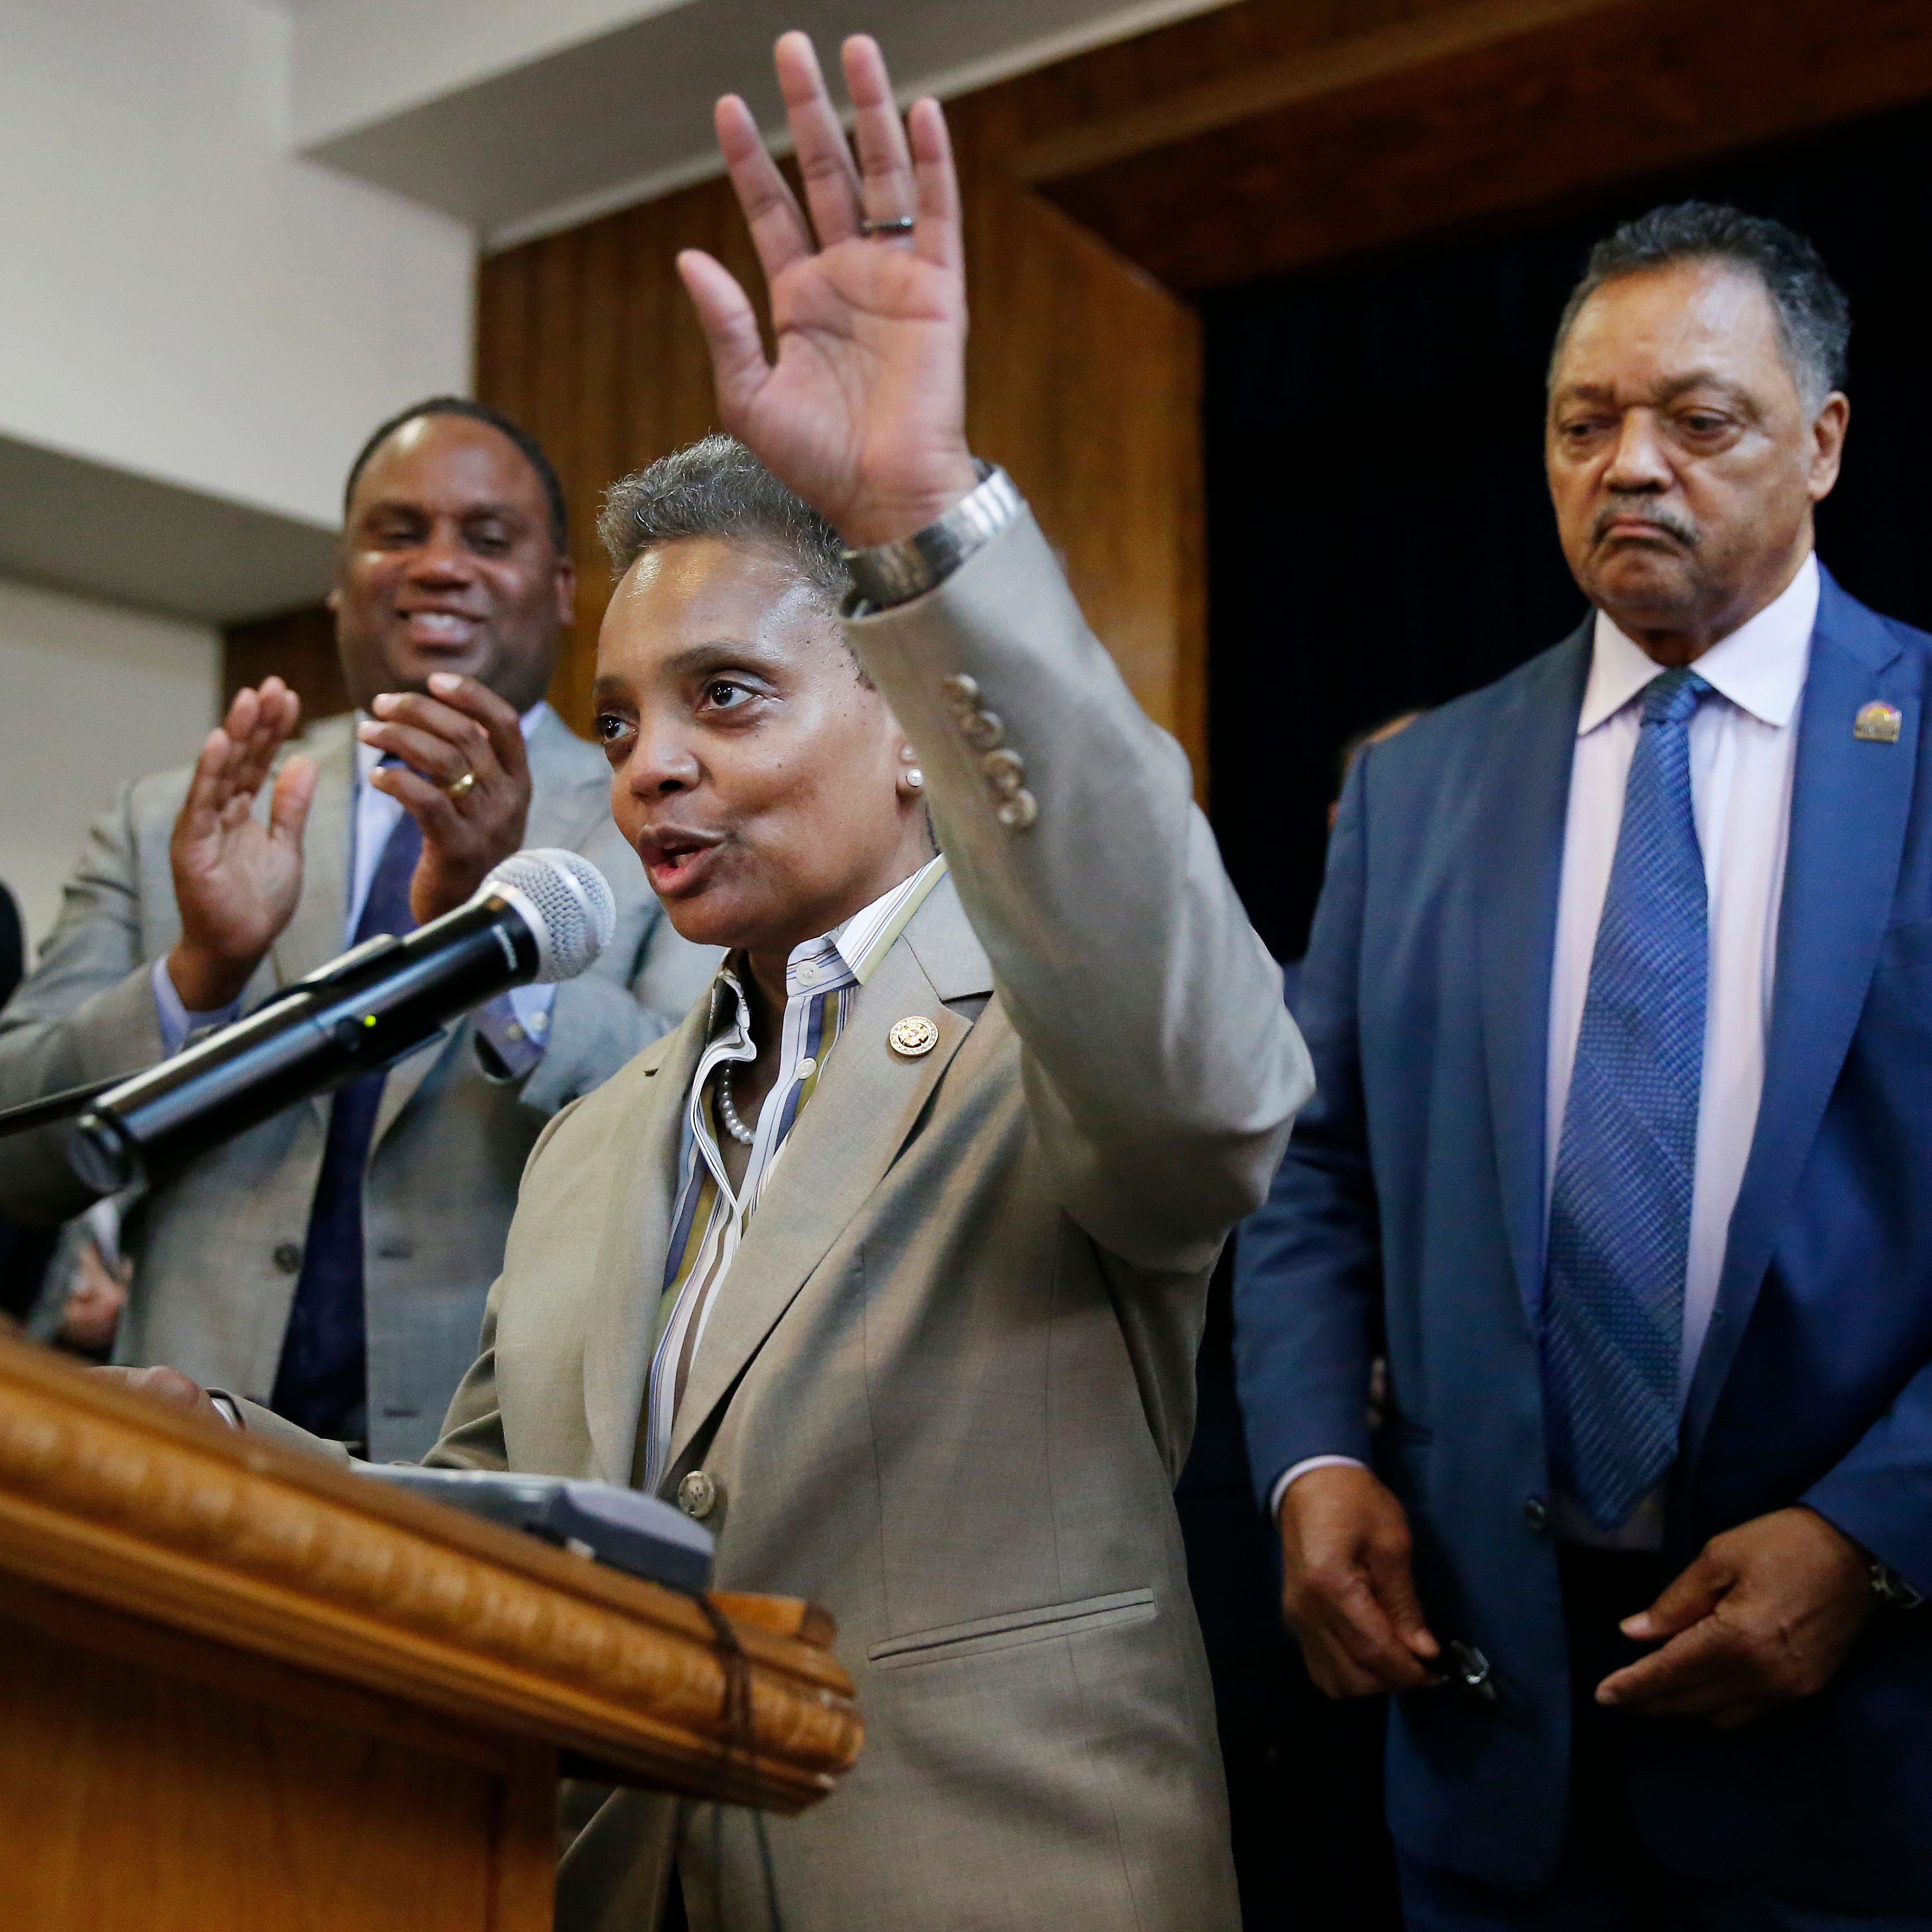 New Chicago Mayor Lori Lightfoot faces same old financial crisis | Opinion